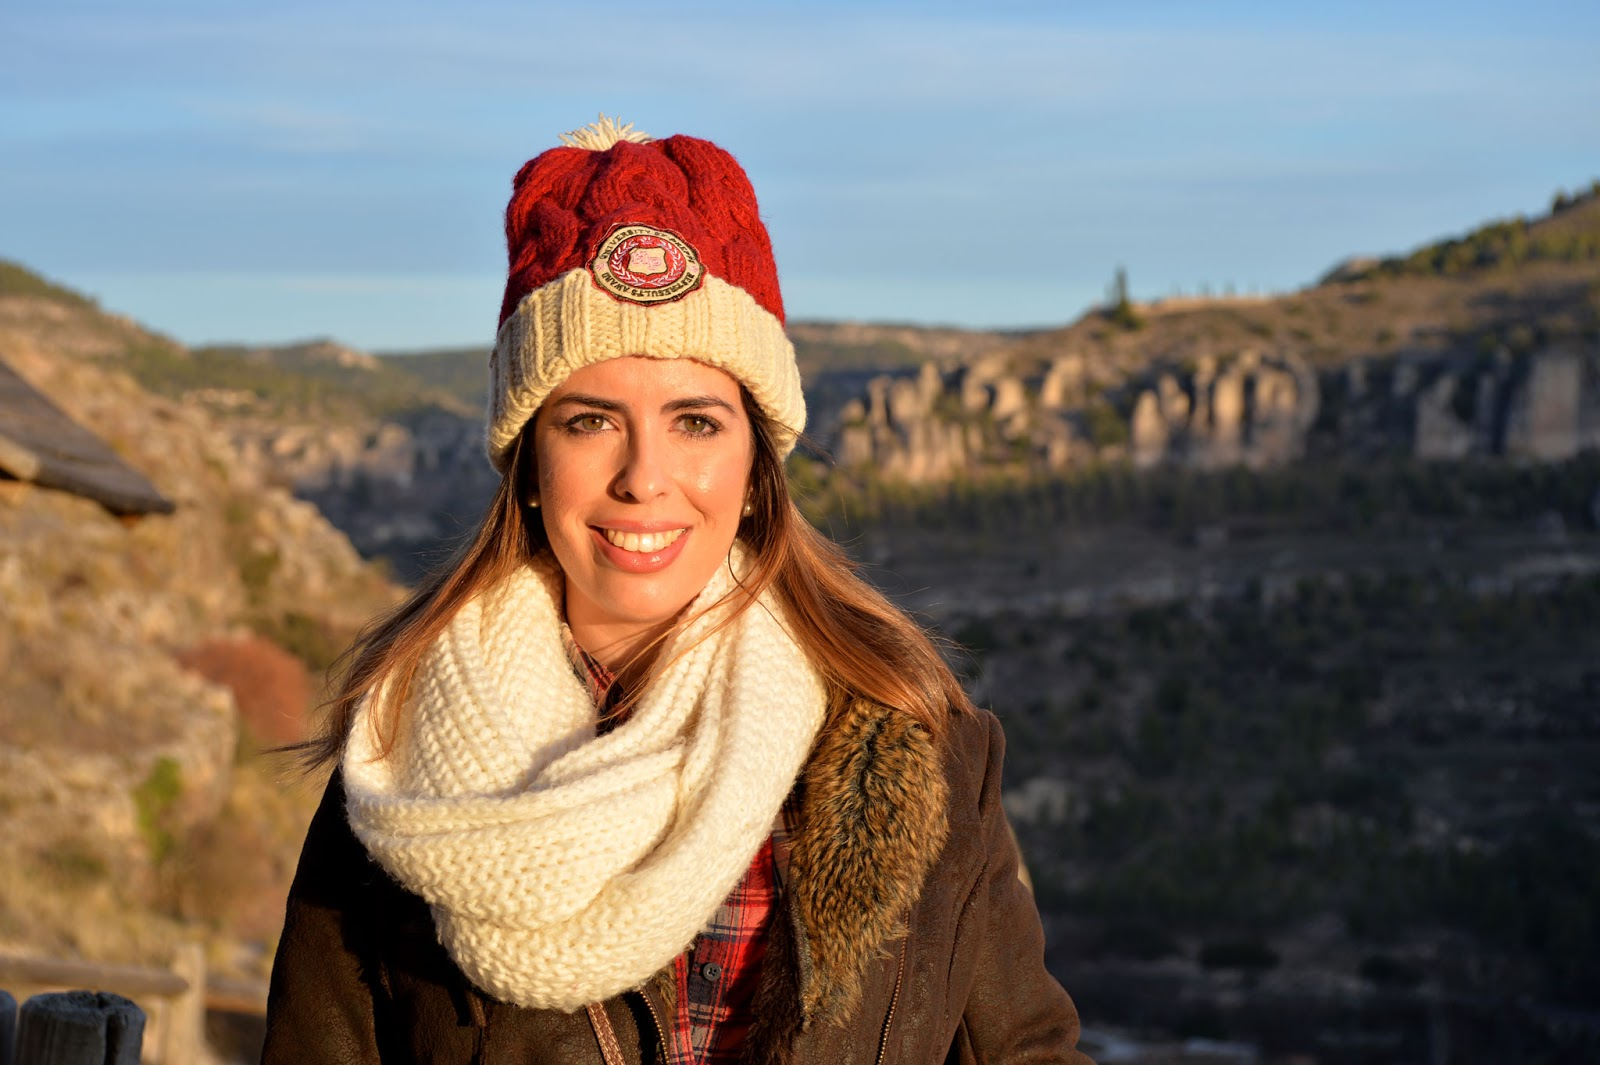 cuenca spain winter travel outfit